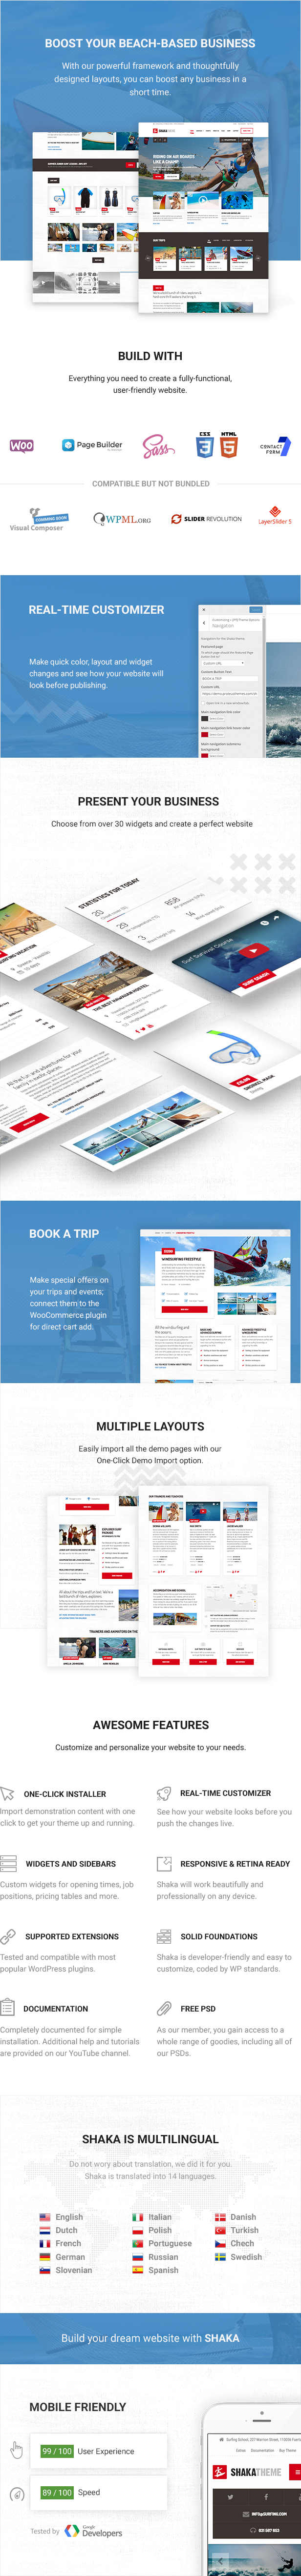 WordPress theme Shaka - A beach business WordPress theme for water sport and activity schools. Surf, kayak and more. (Travel)